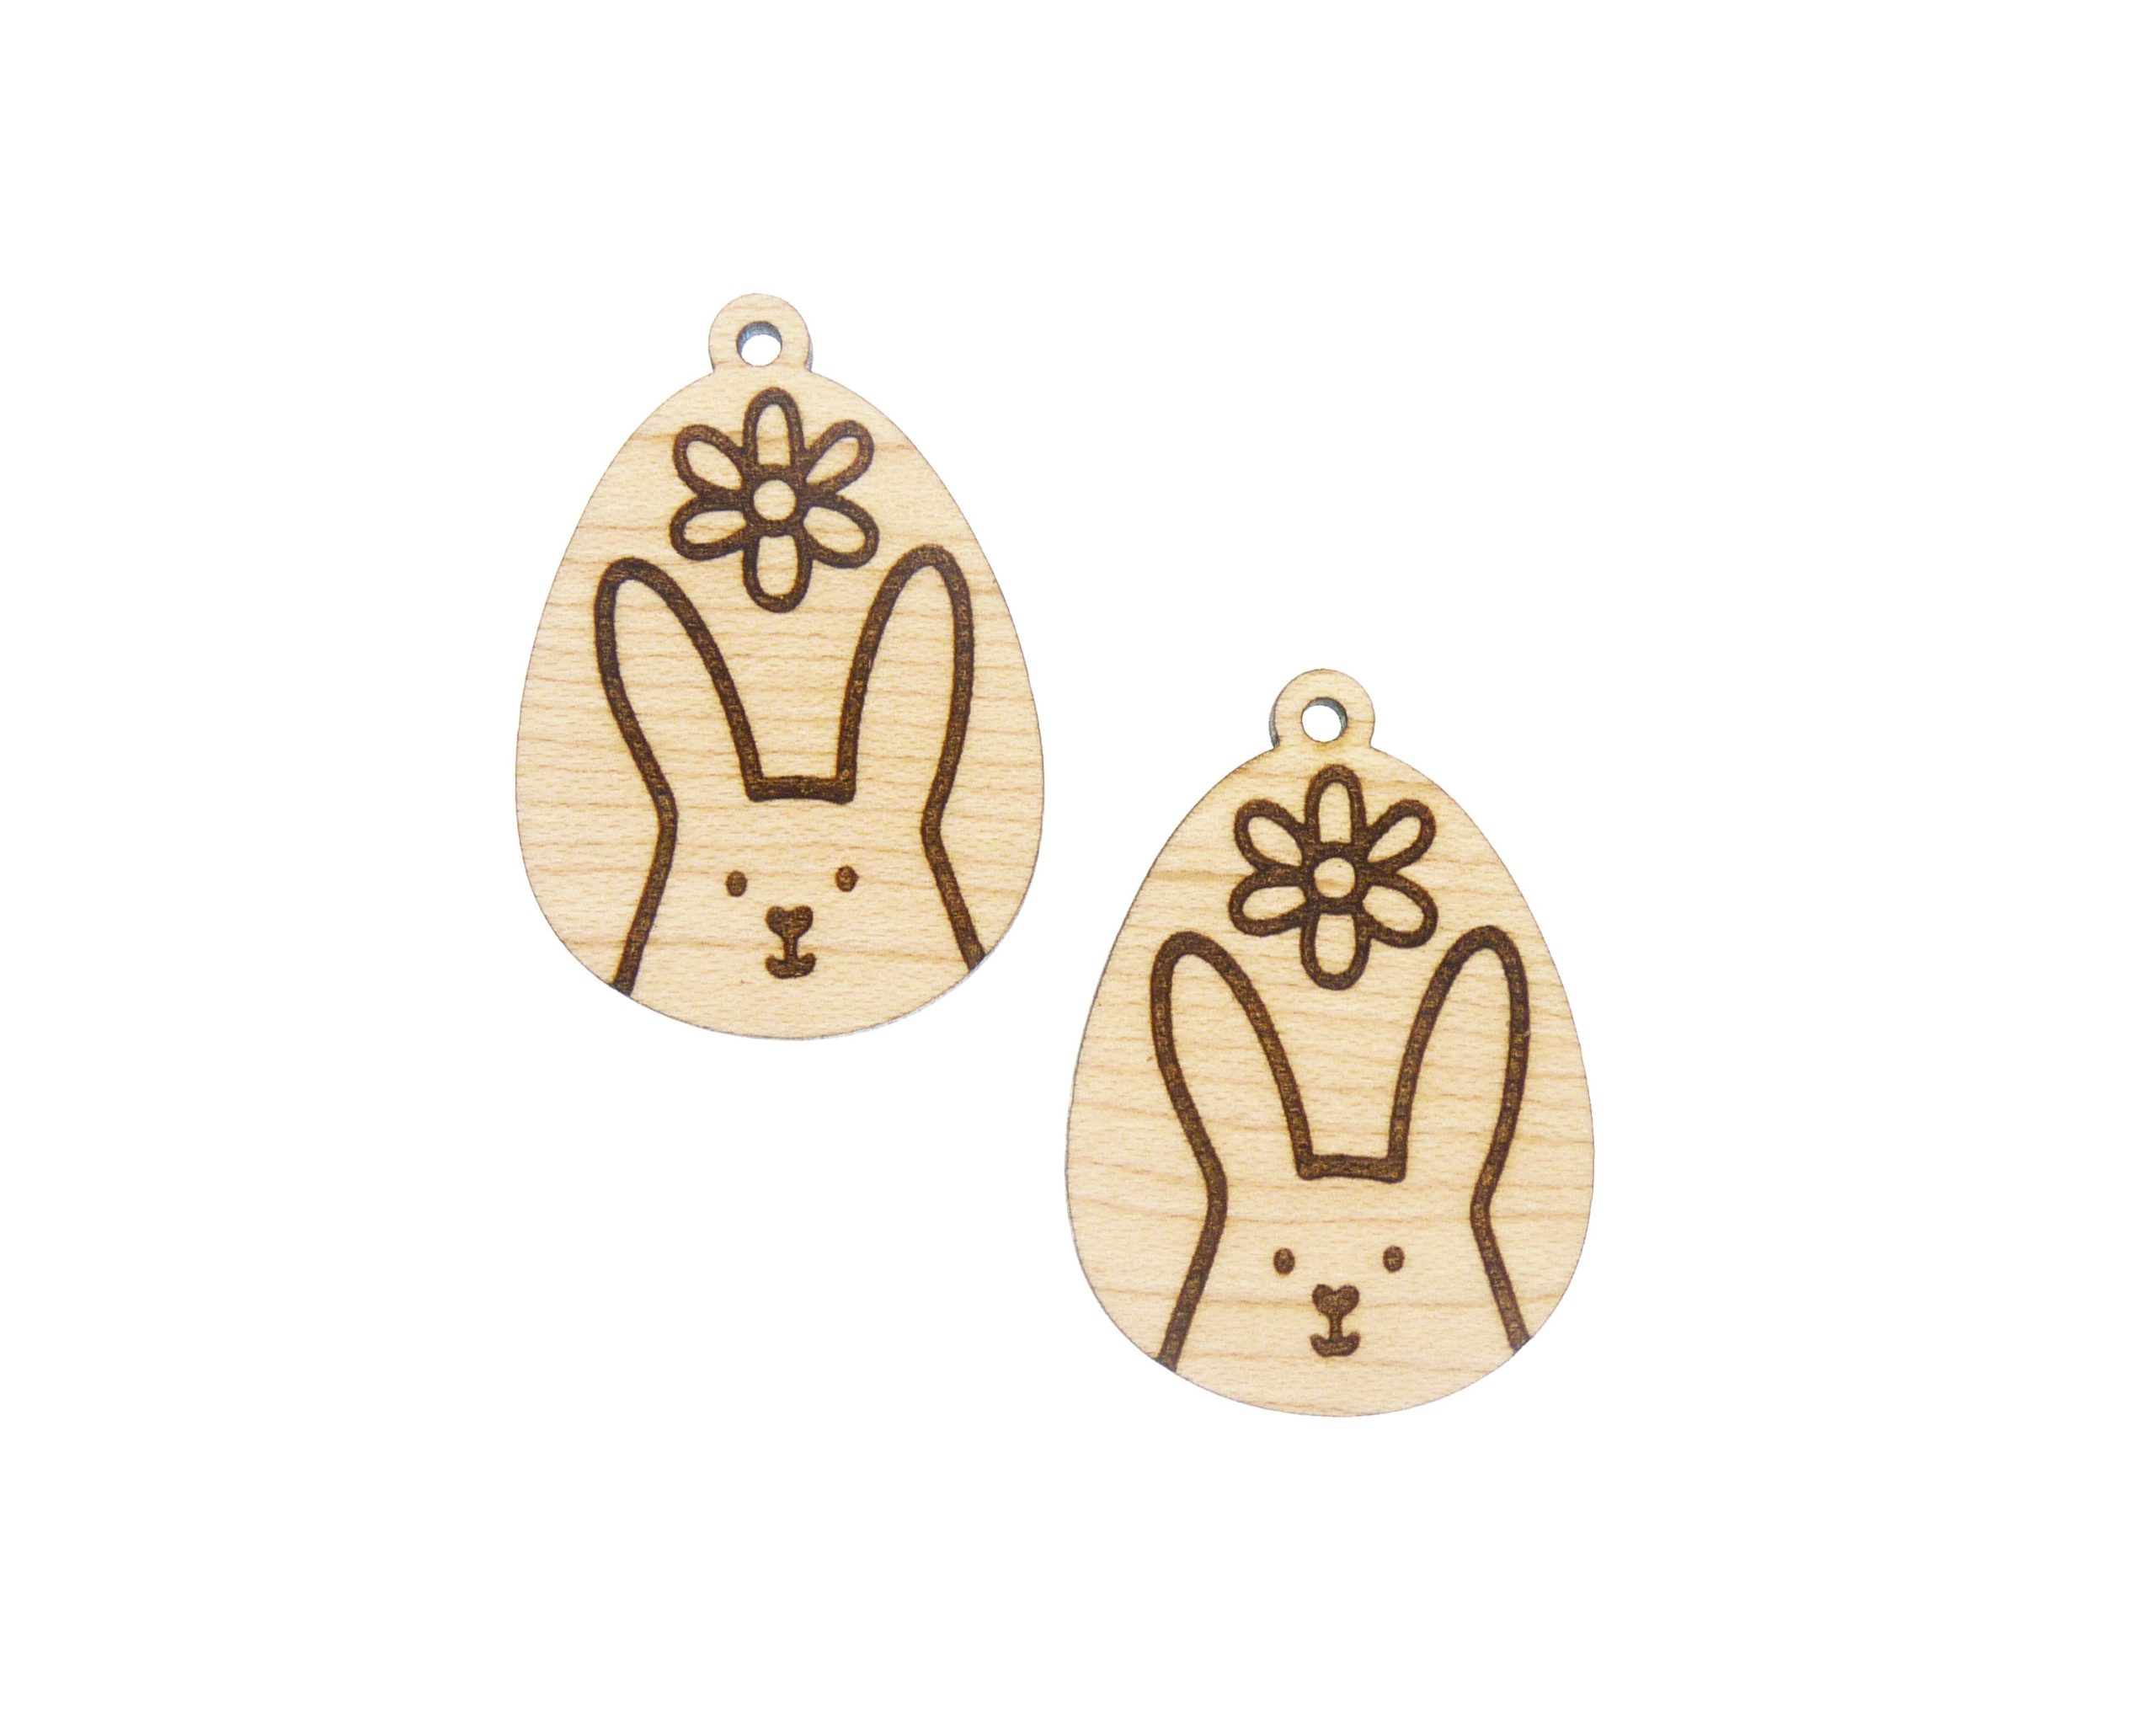 Bunny Rabbit with Flower Engraved Wood Drop Charms